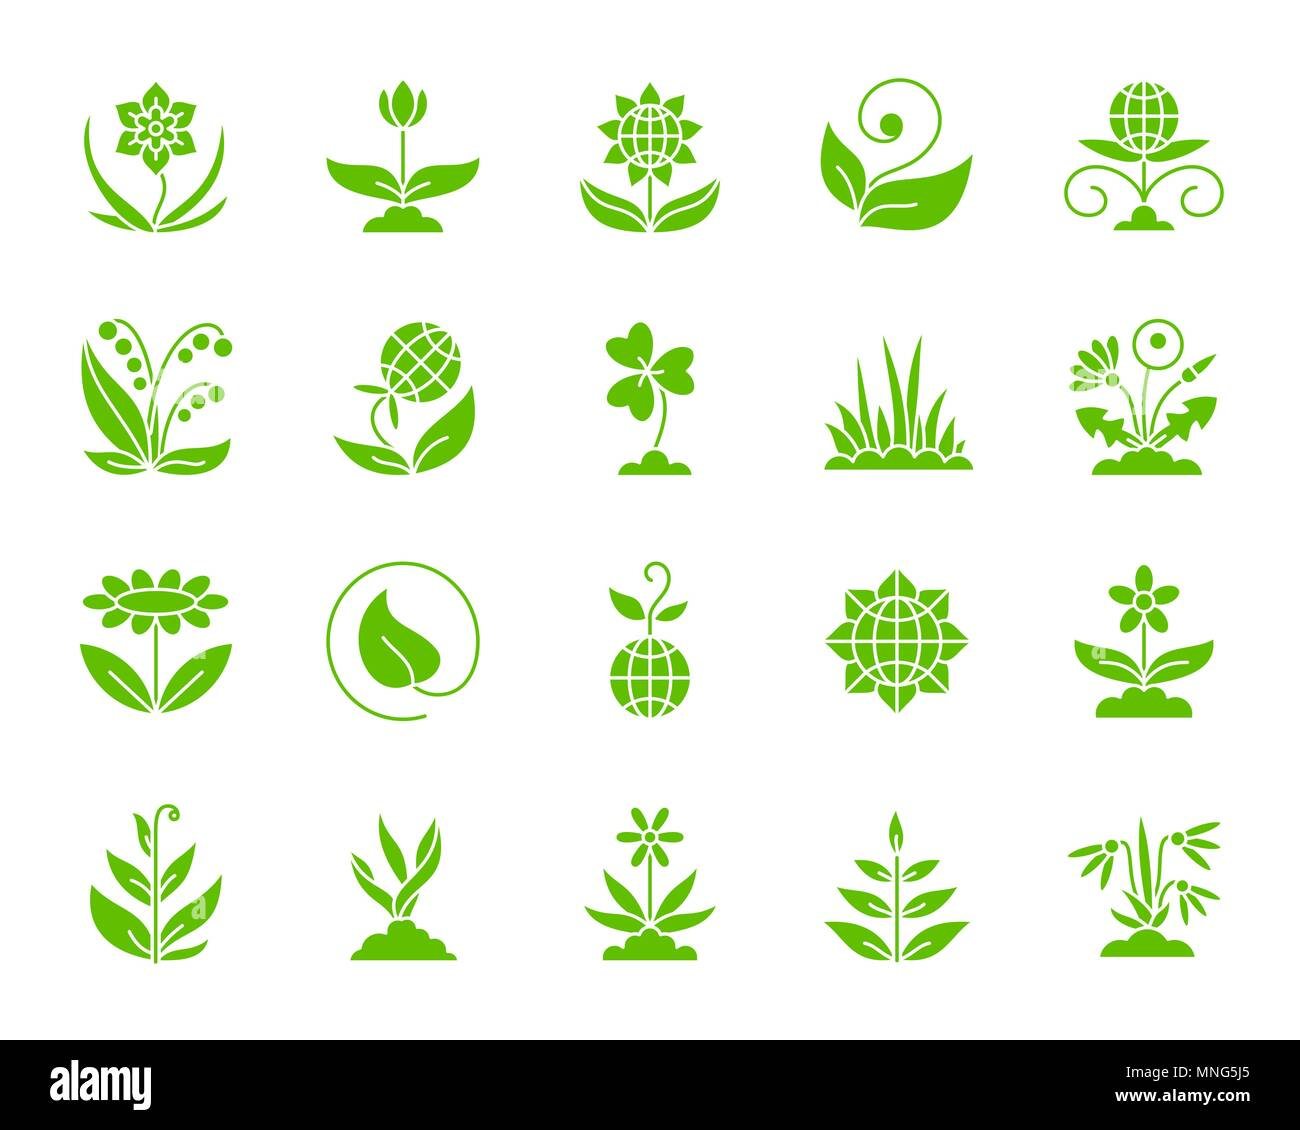 Garden silhouette icons set. Isolated web sign kit of flower. Plant monochrome pictogram collection includes sprout, growth, seedling. Simple garden s Stock Vector